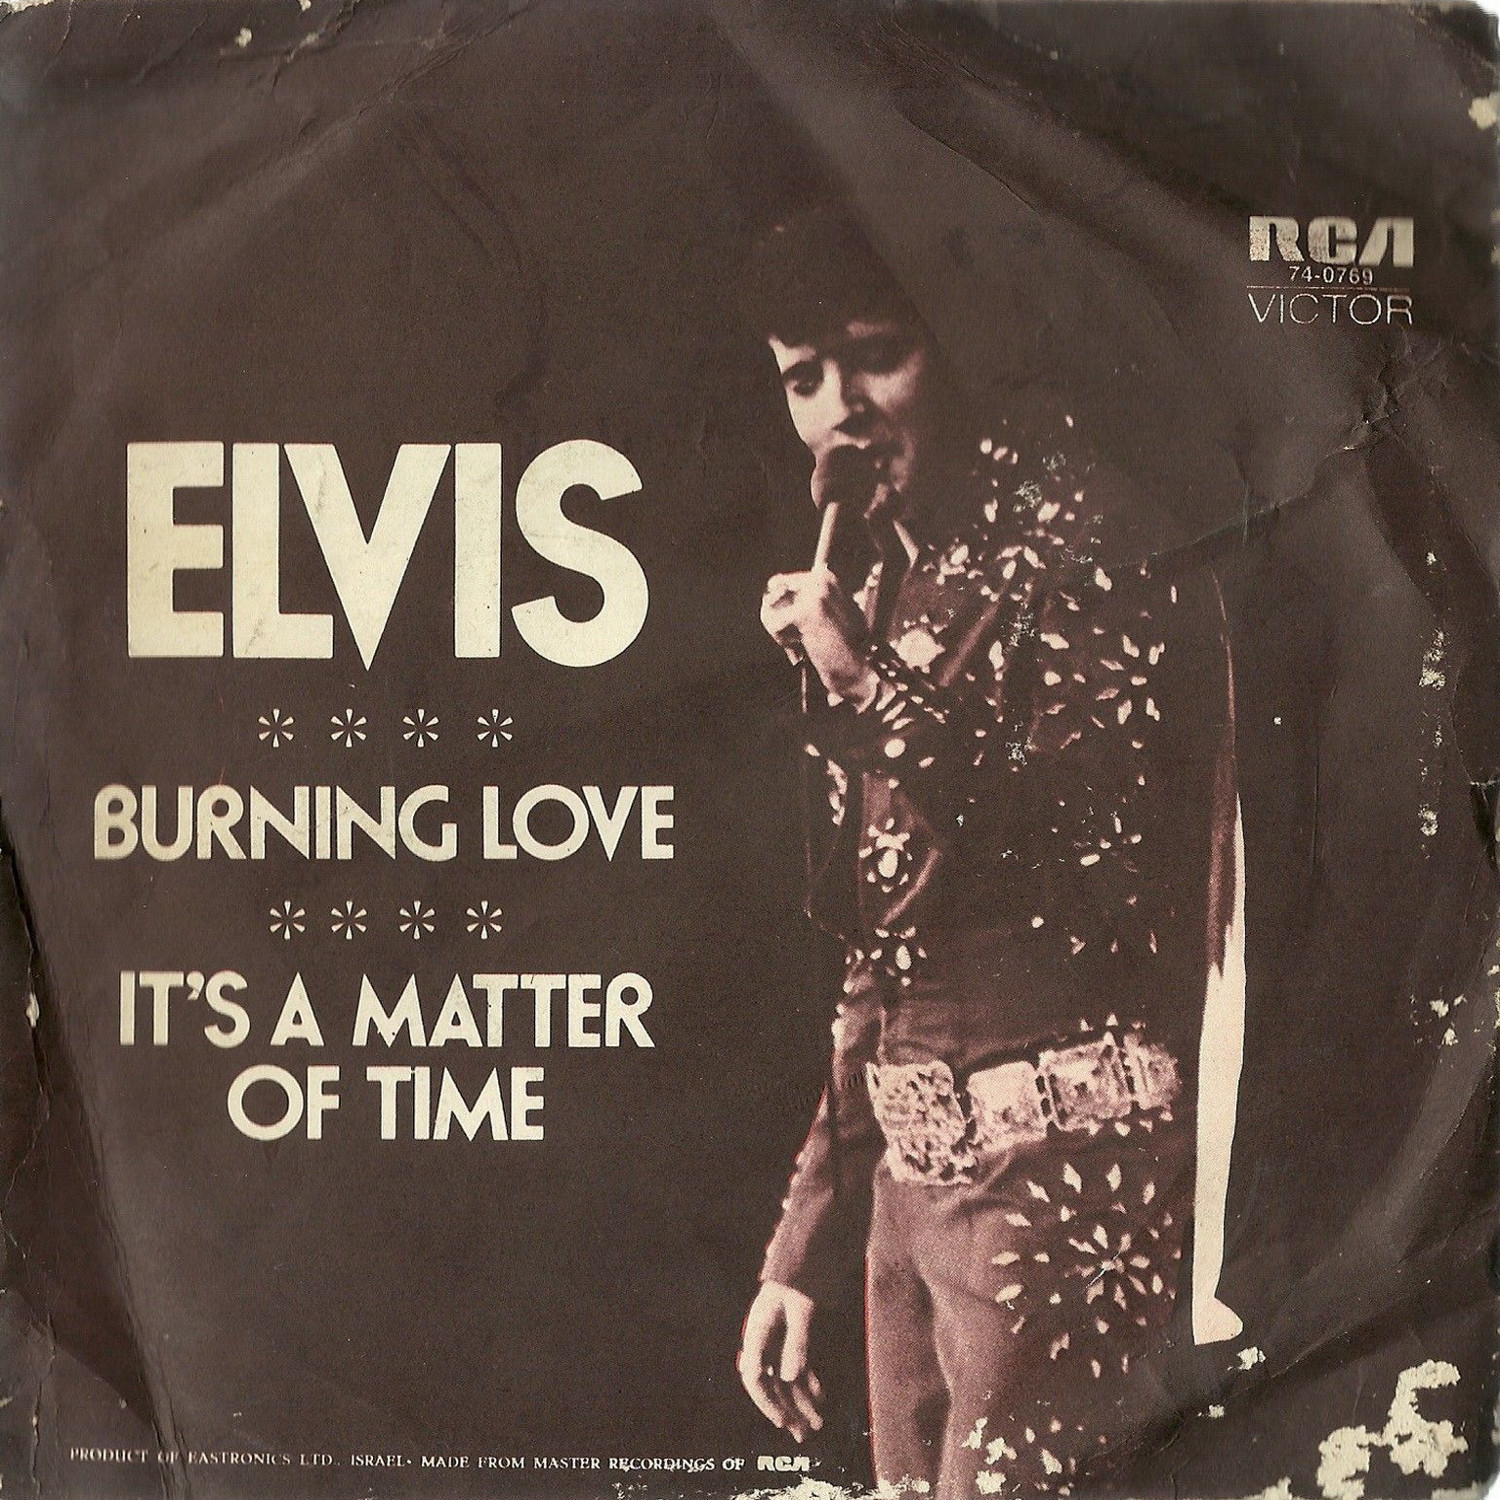 Burning Love / It's A Matter Of Time 47-0769bzcsl6